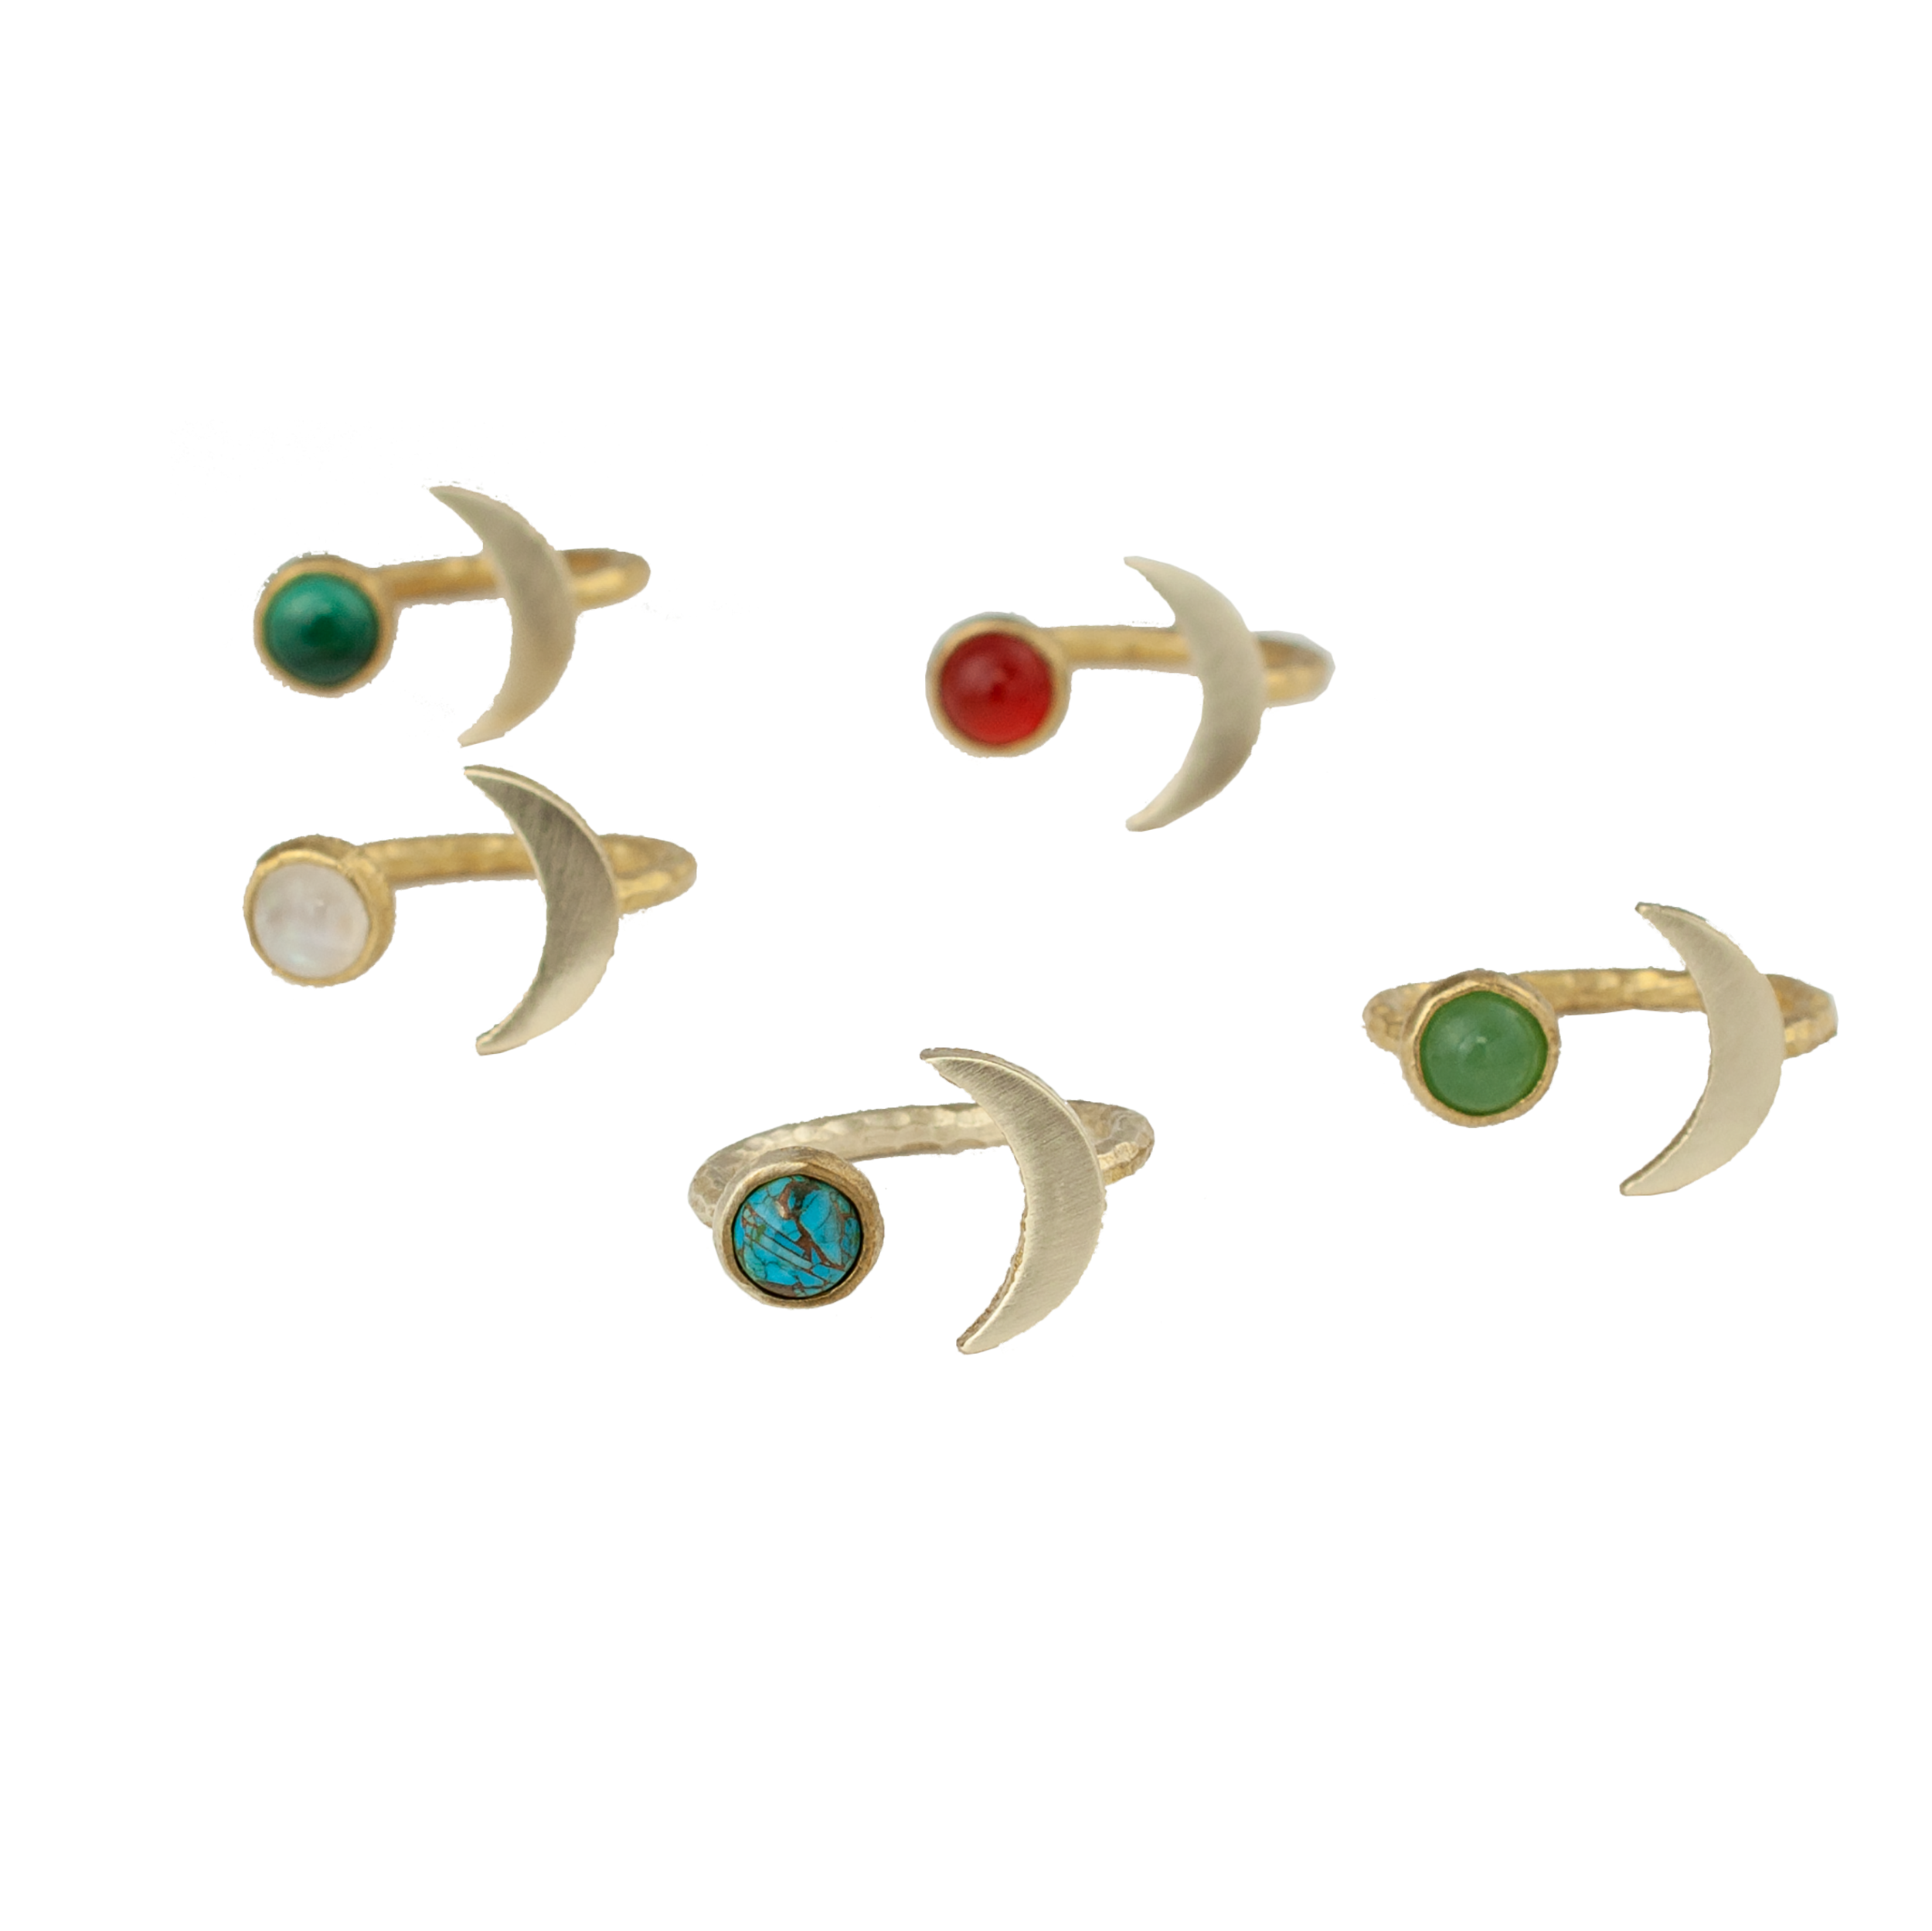 Moon shaped rings with brass and natural gemstones